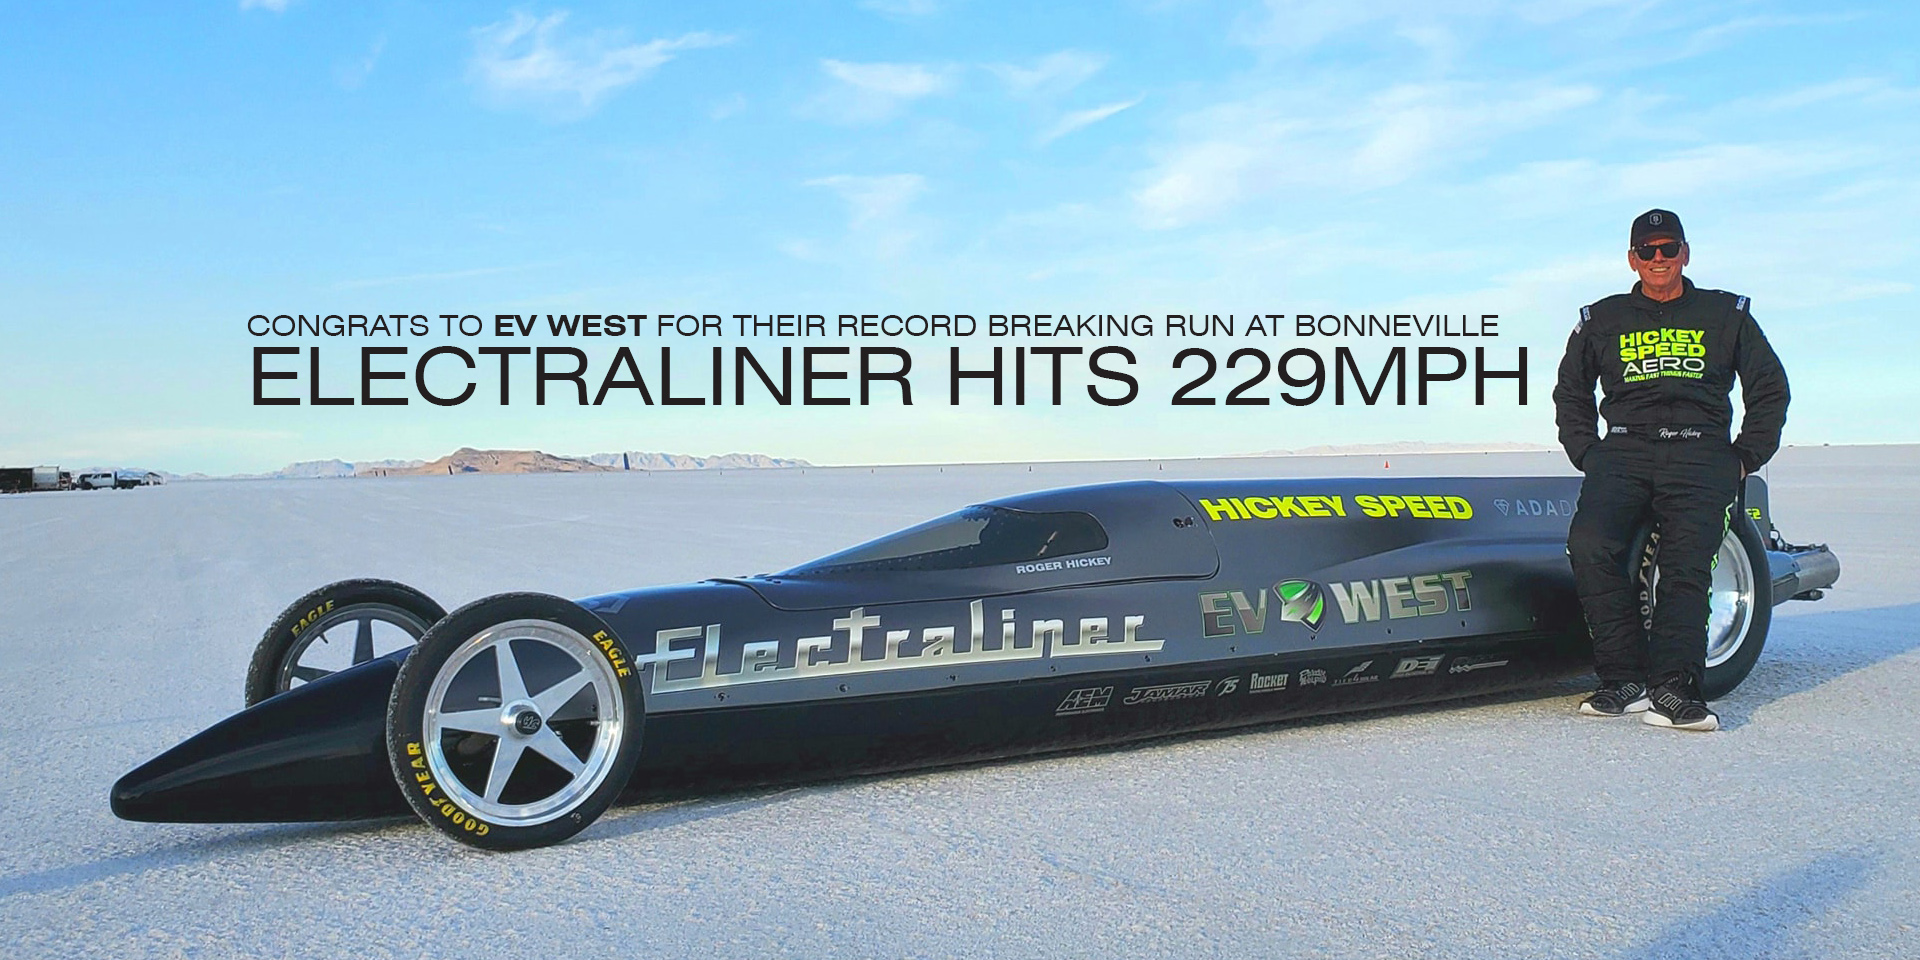 Electraliner hits 229mph